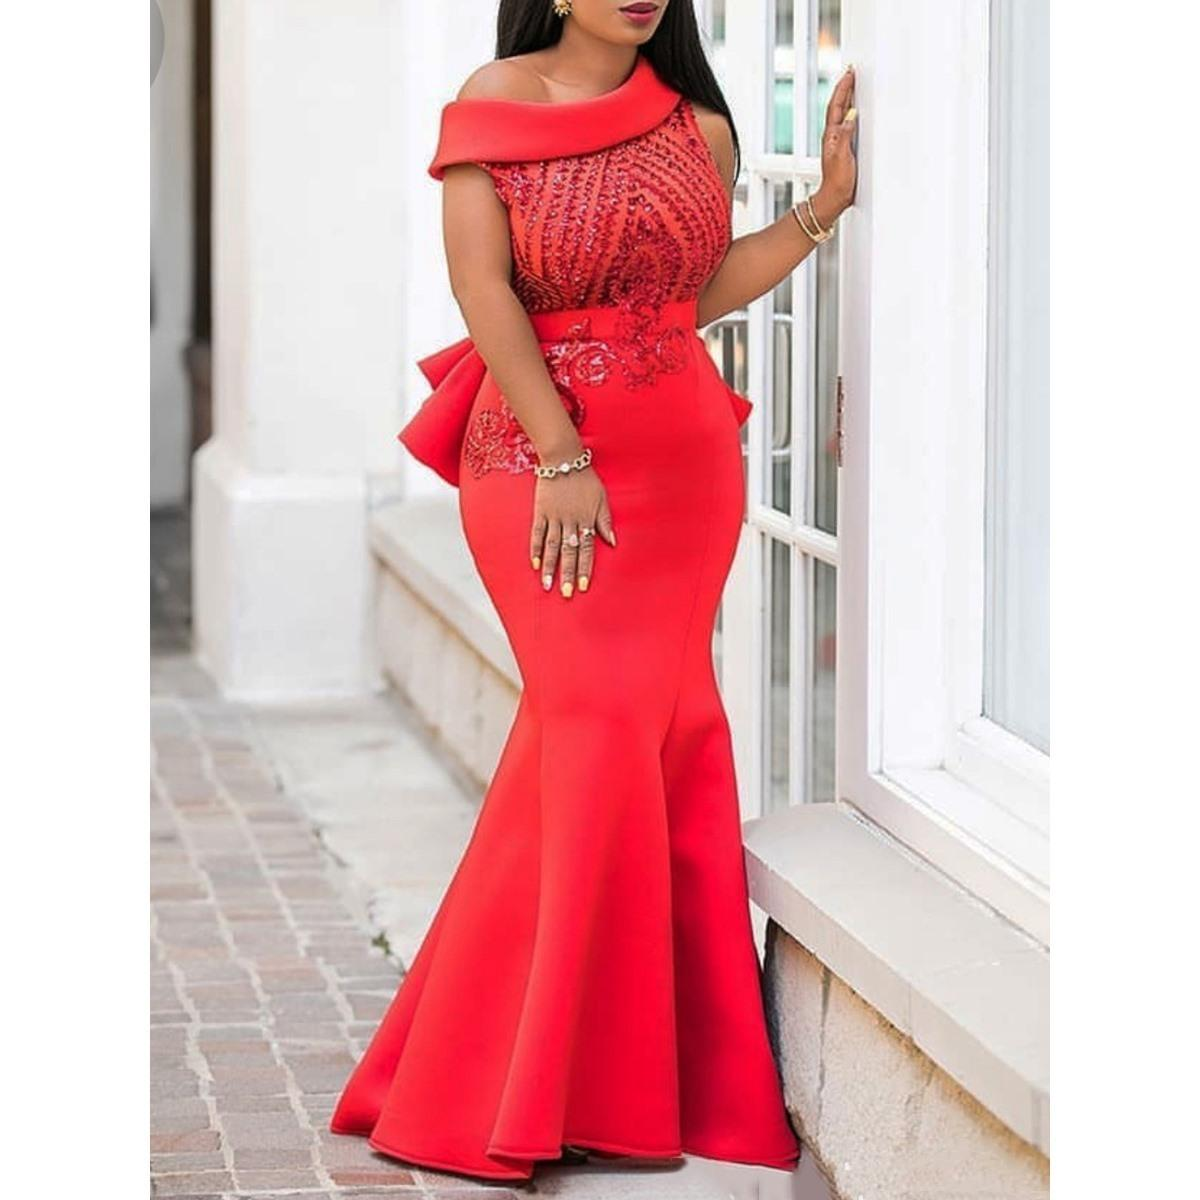 ed81e26abcd73 Sequins Bodycon Trumpet Party Dress Women Elegant Slim Ruffle Christmas  Ladies Prom Evening Formal Dinner Red Sexy Maxi Dresses T3190612